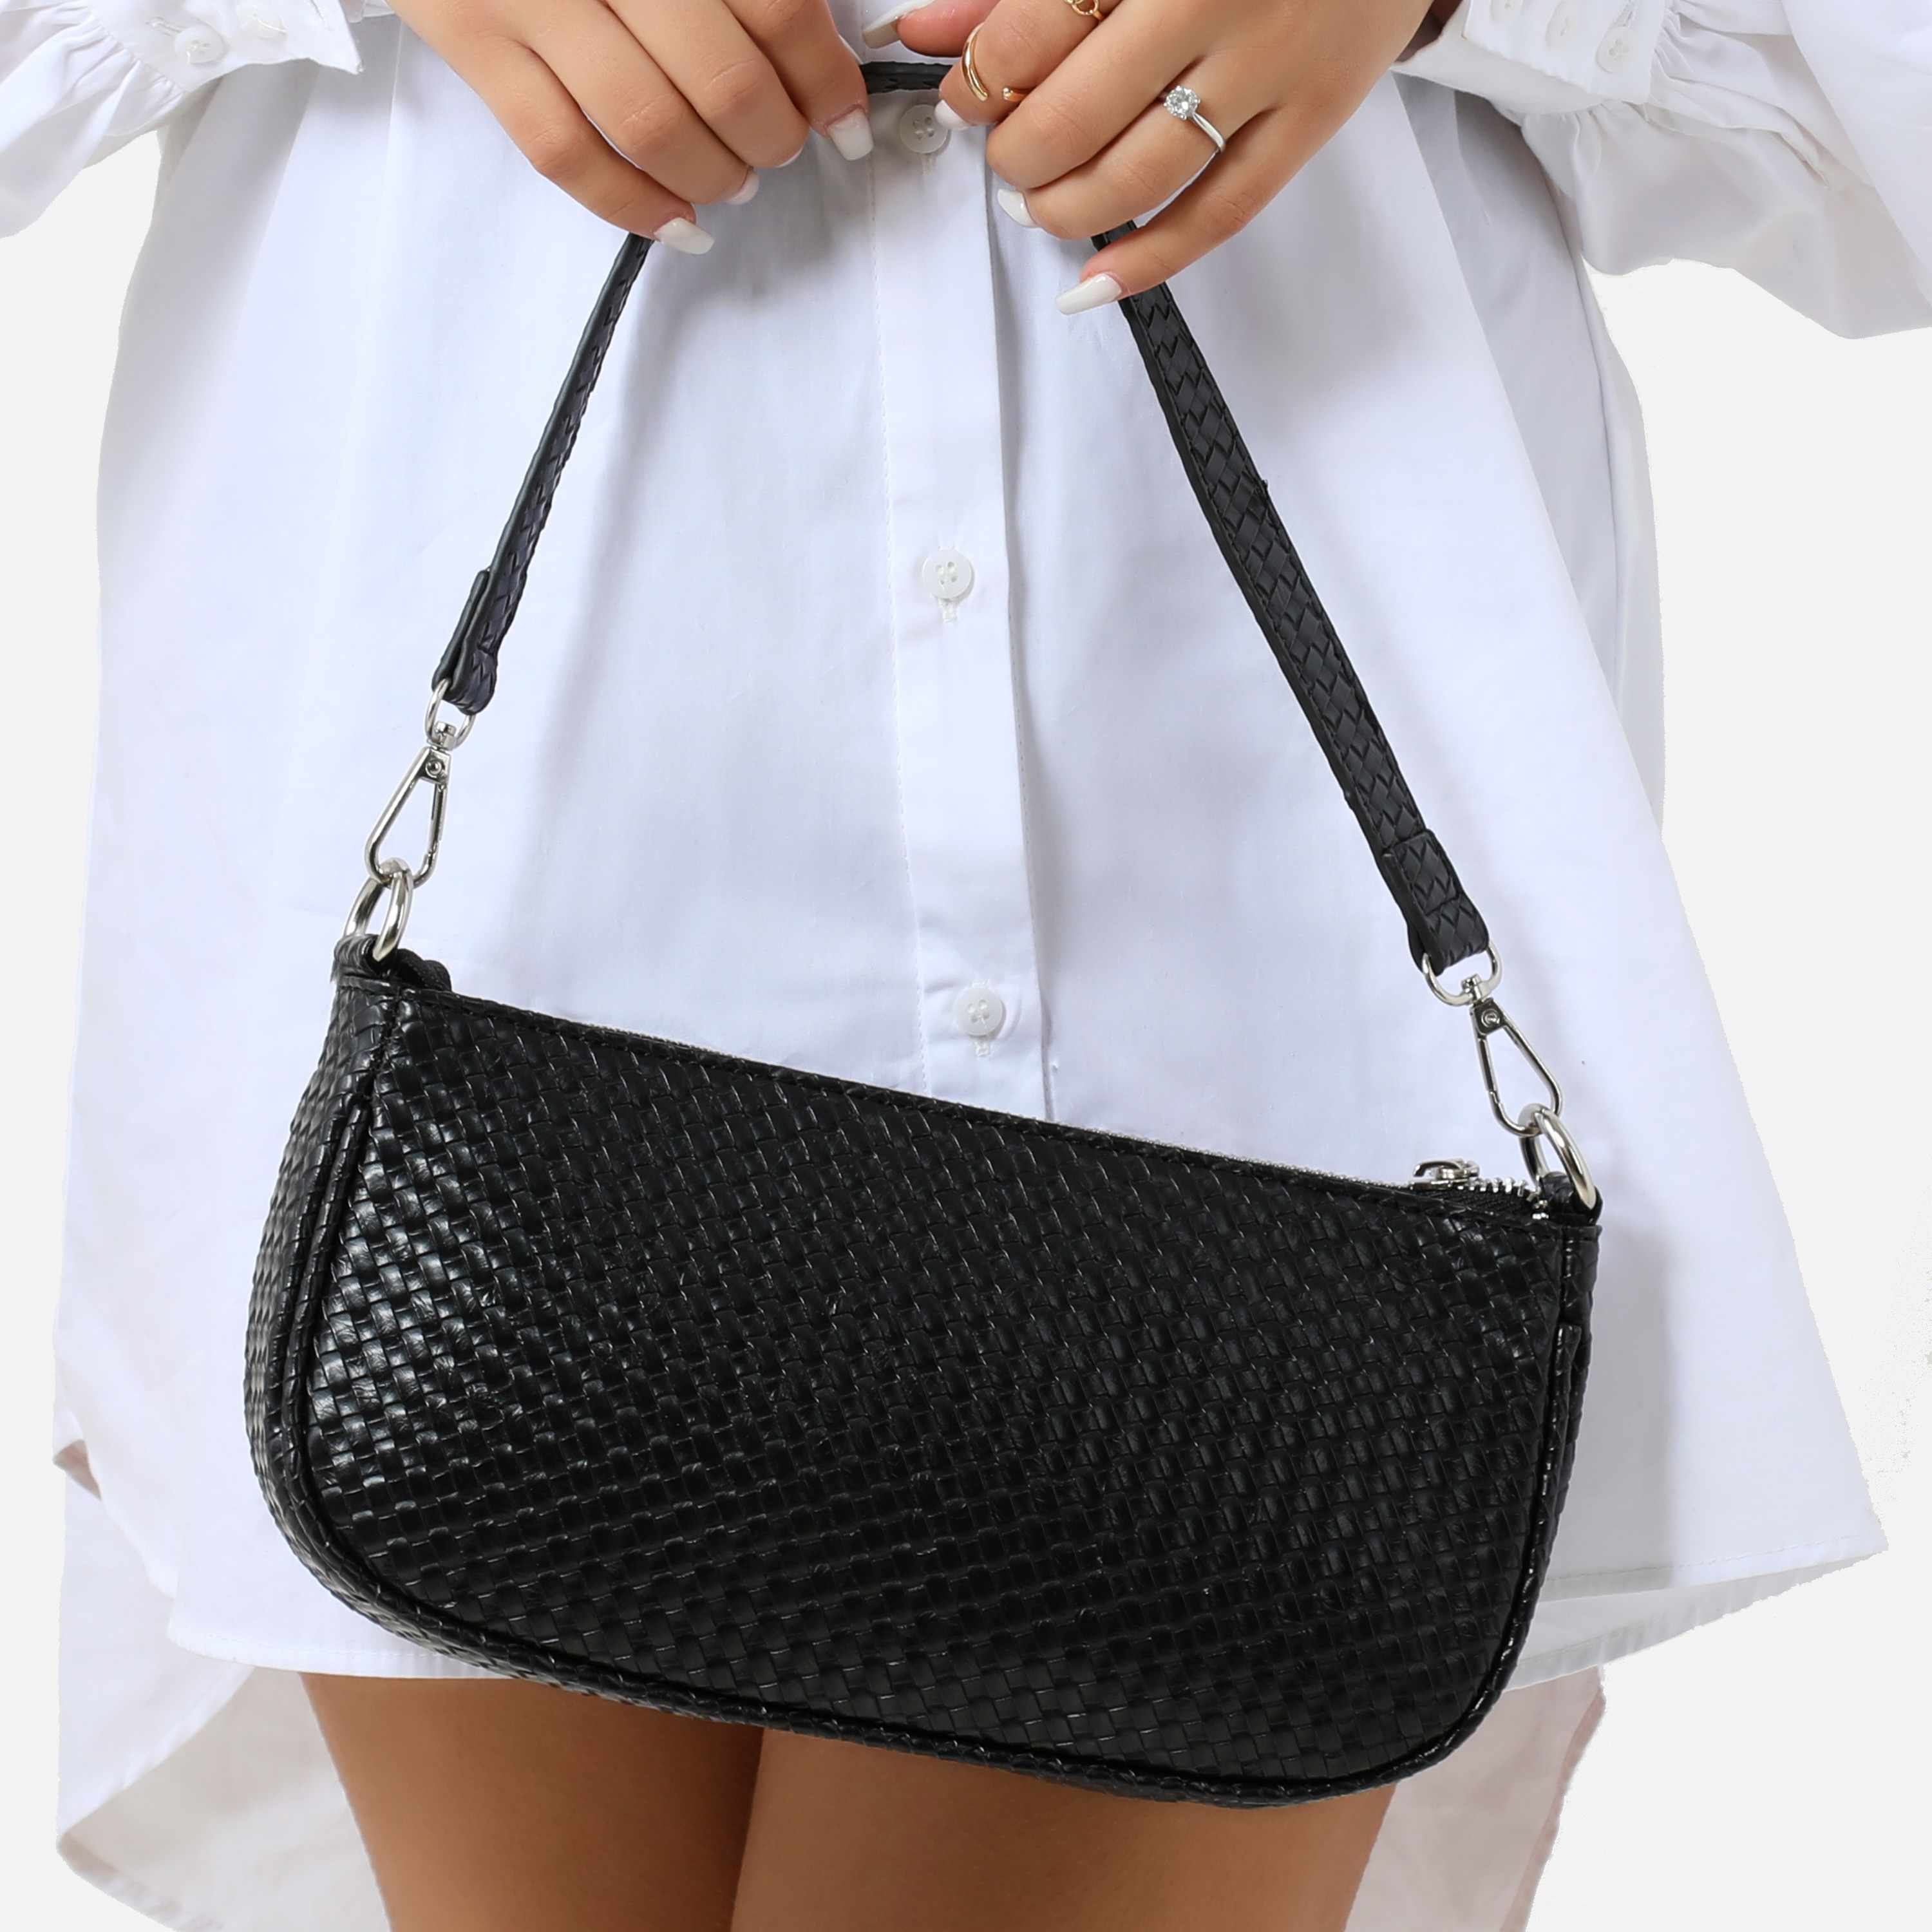 Woven Baguette Shoulder Bag In Black Faux Leather